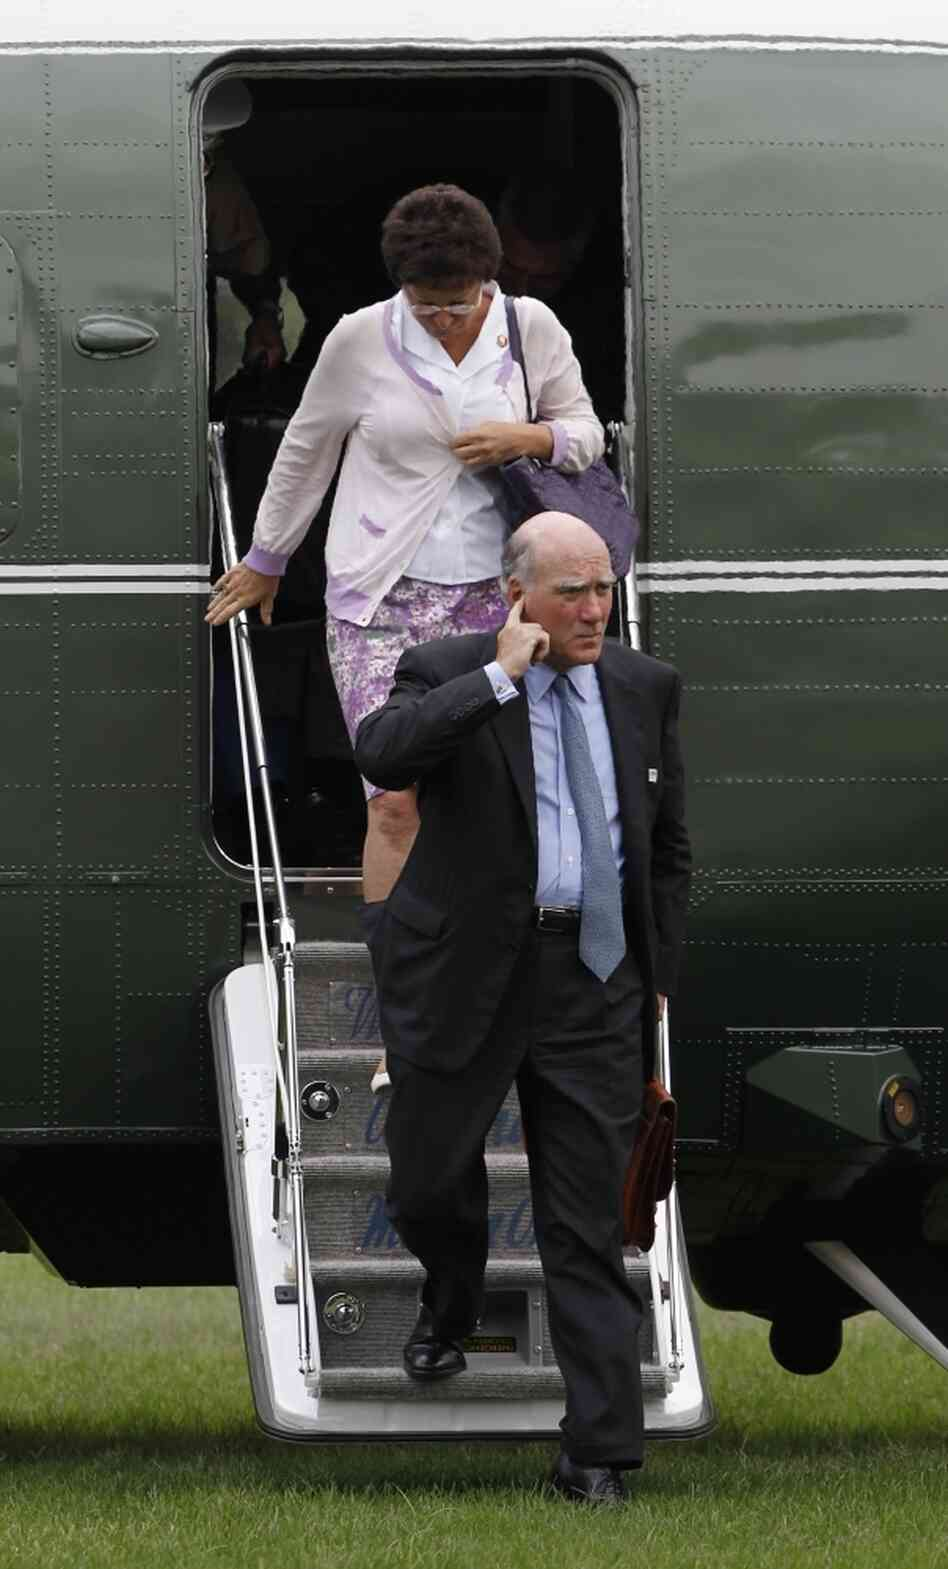 White House seniors aides Bill Daley and Valerie Jarrett exit Marine One, Sept. 5, 2011.